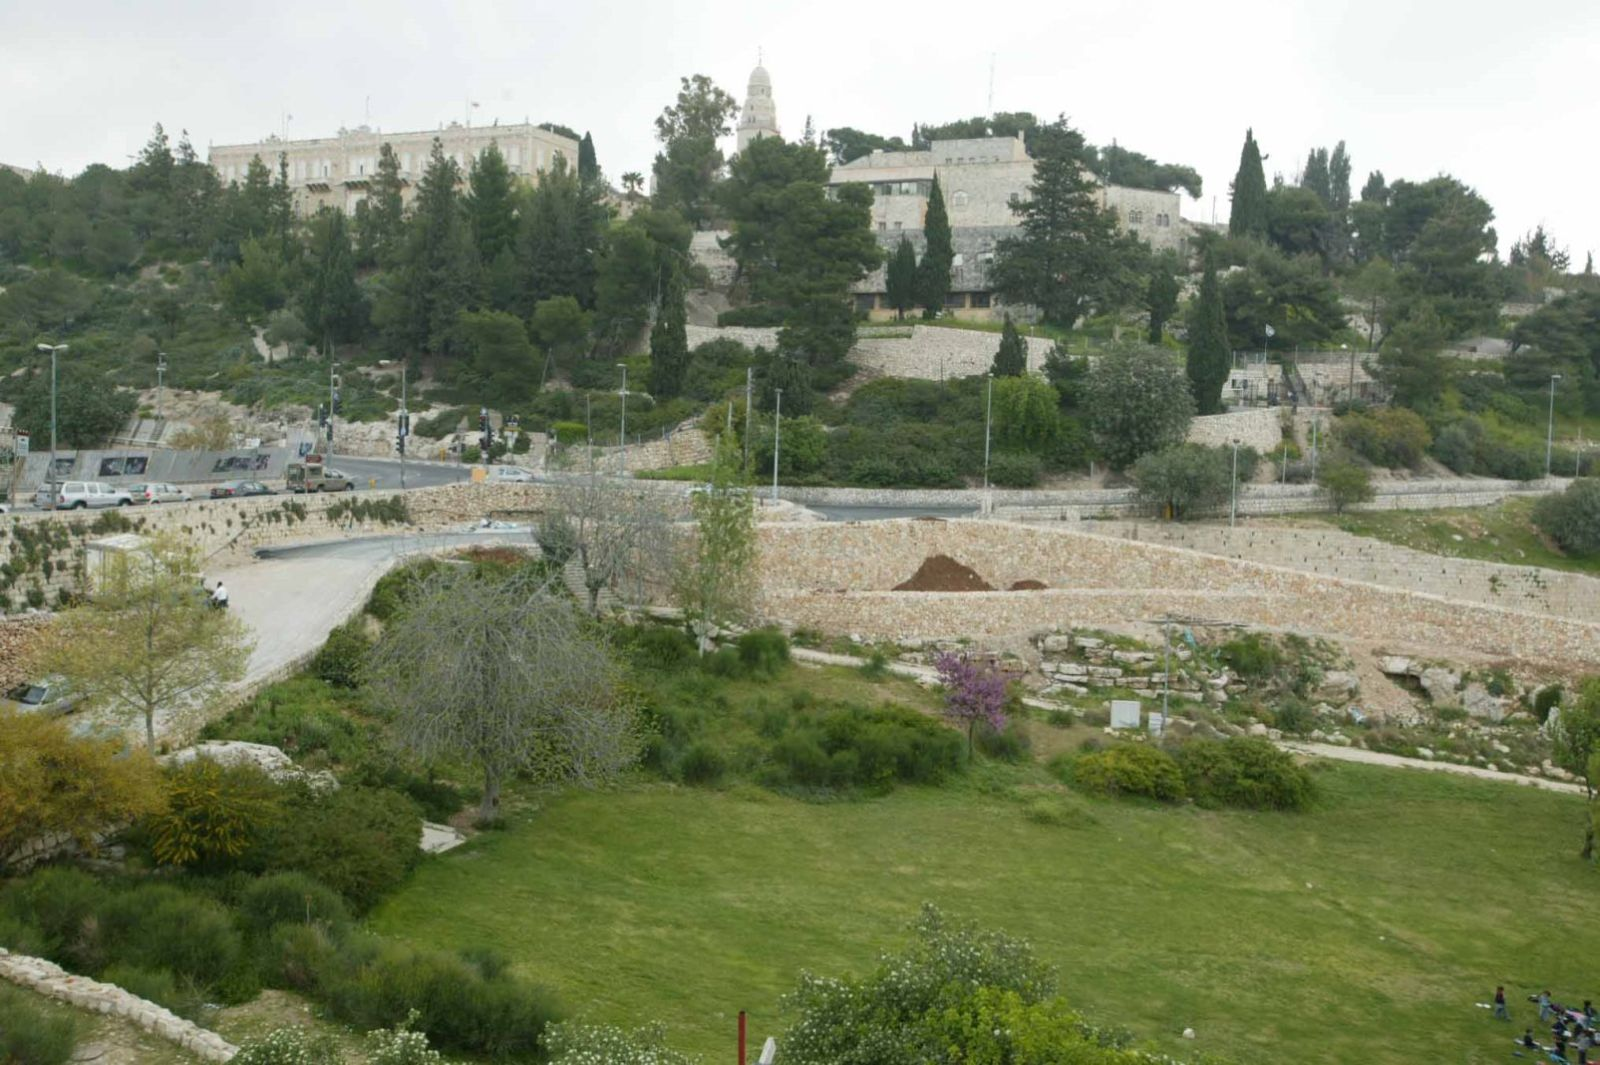 Photo of the Valley of Hinnom courtesy of BiblicalGeographic.com